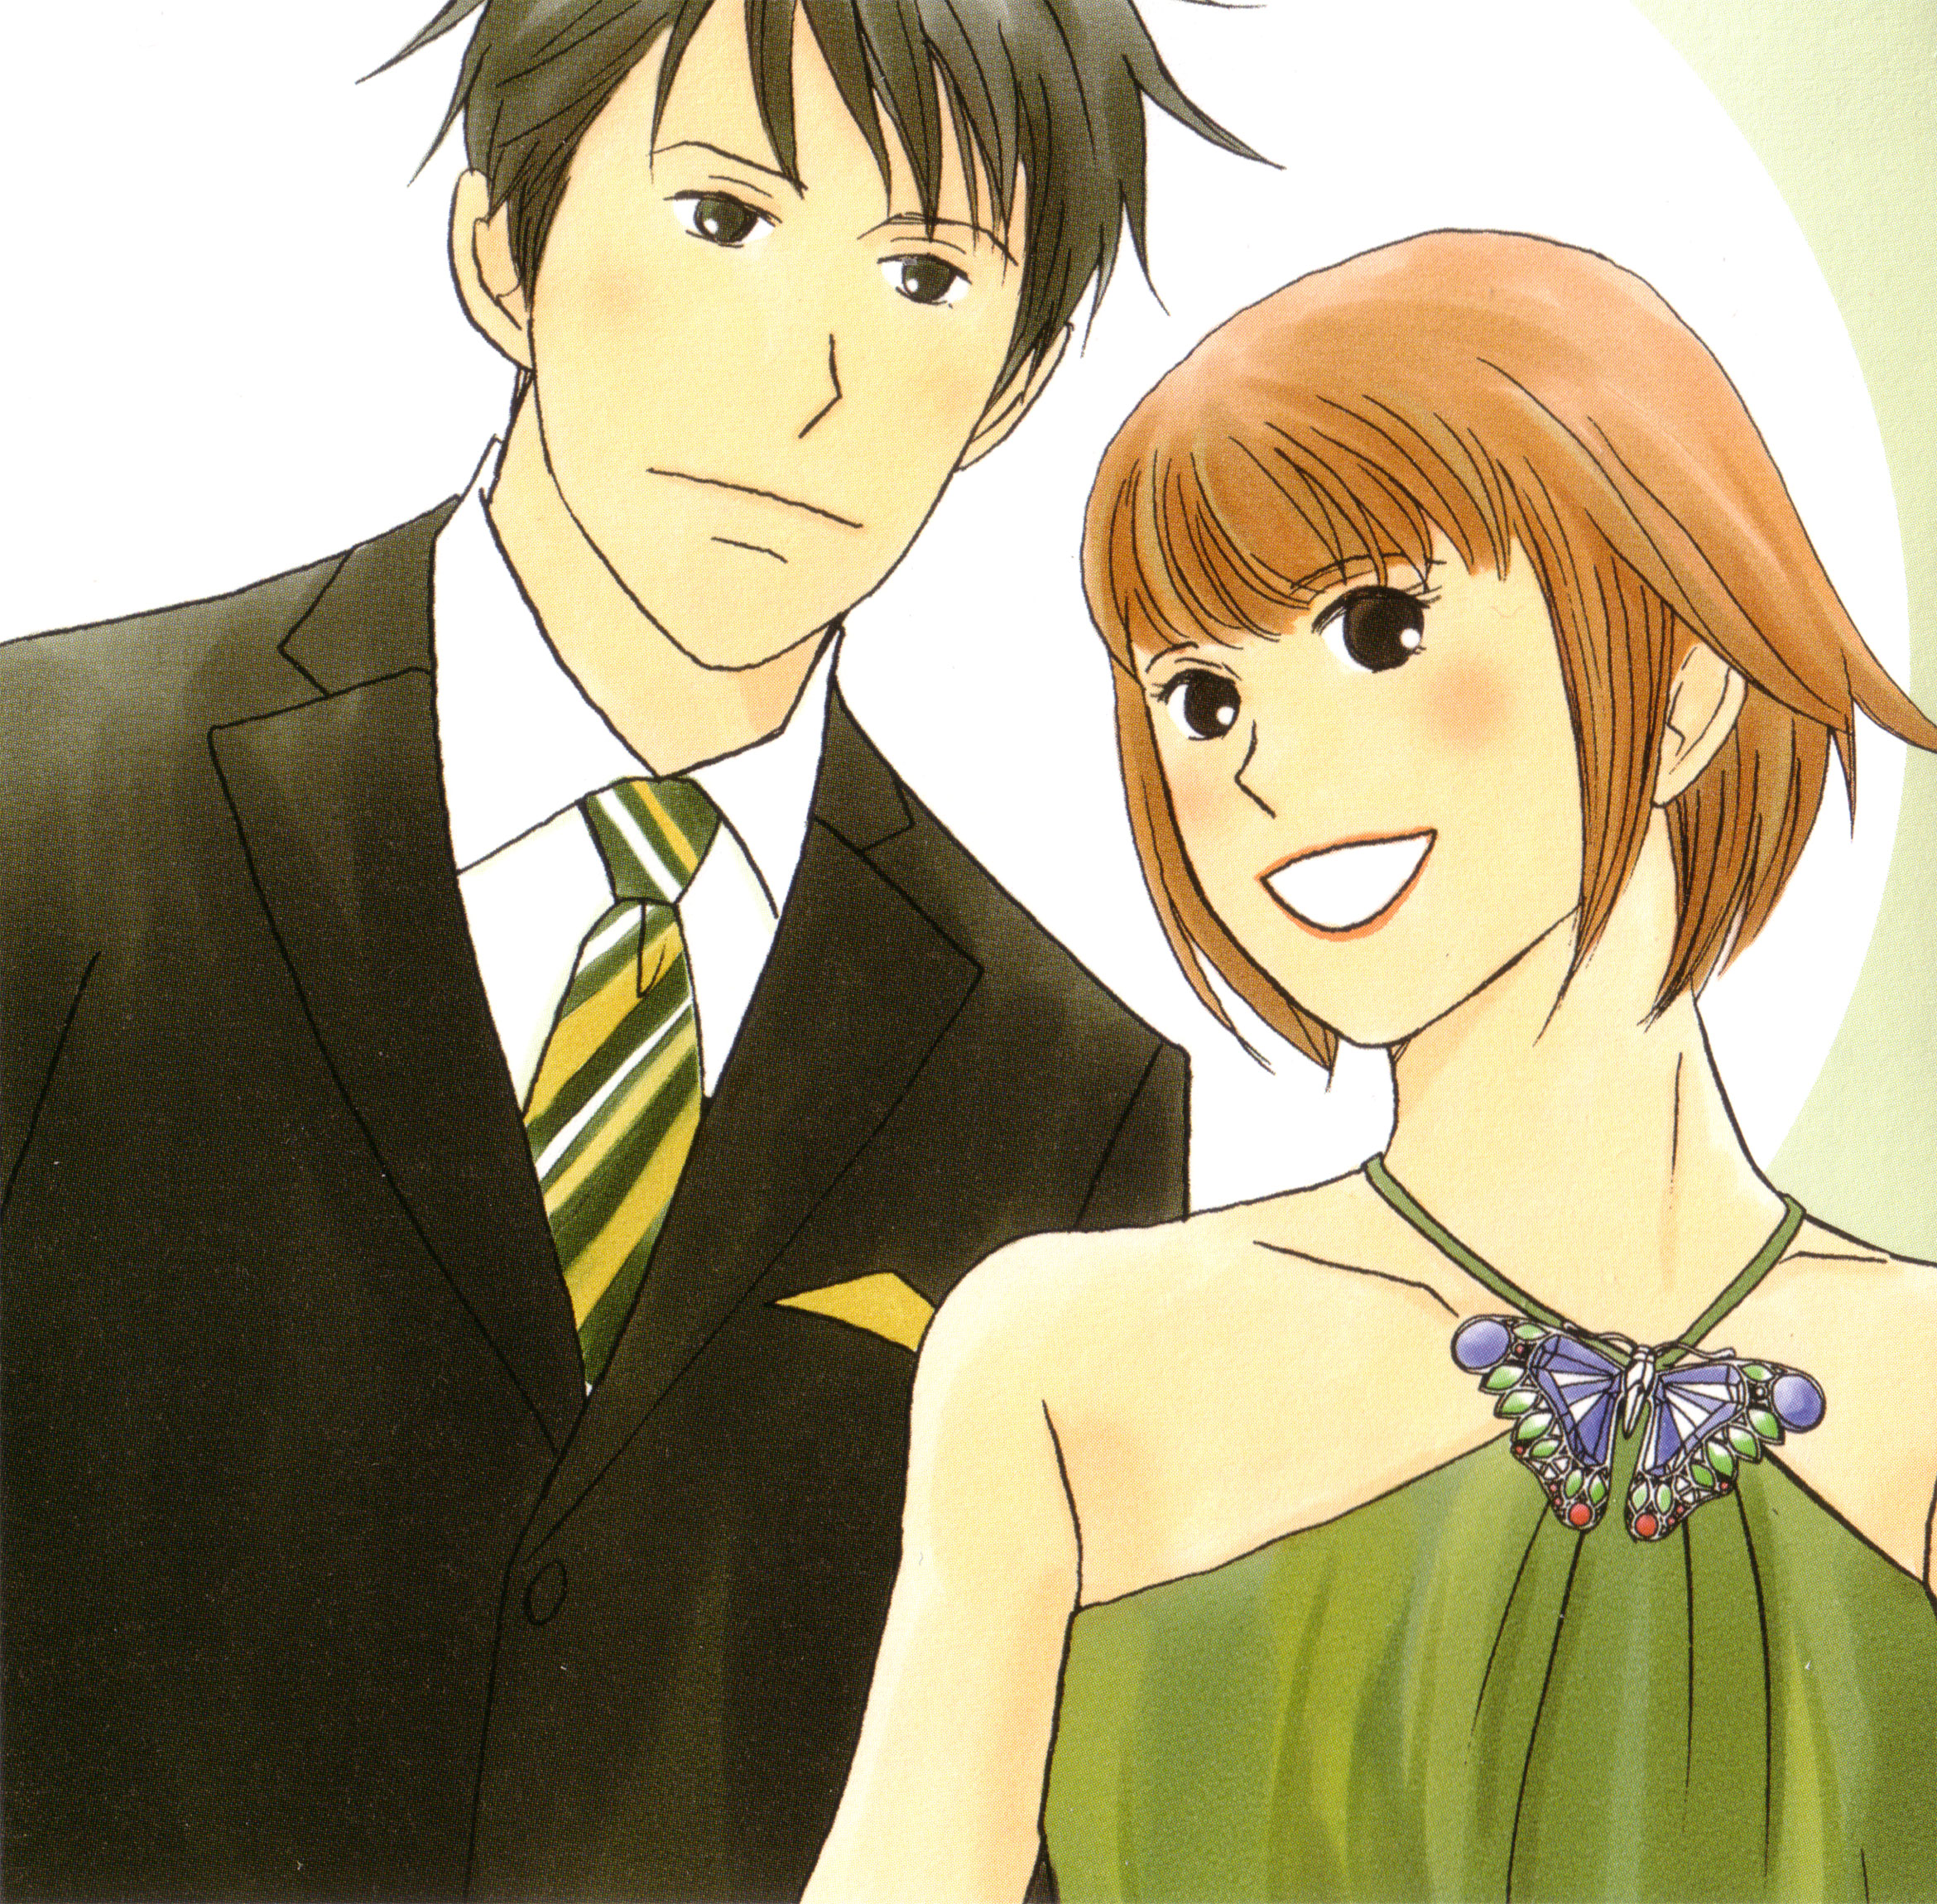 Nodame Cantabile Nodame Vol 13: Nodame Cantabile: Nodame Cantabile Selection CD Book Pg 16